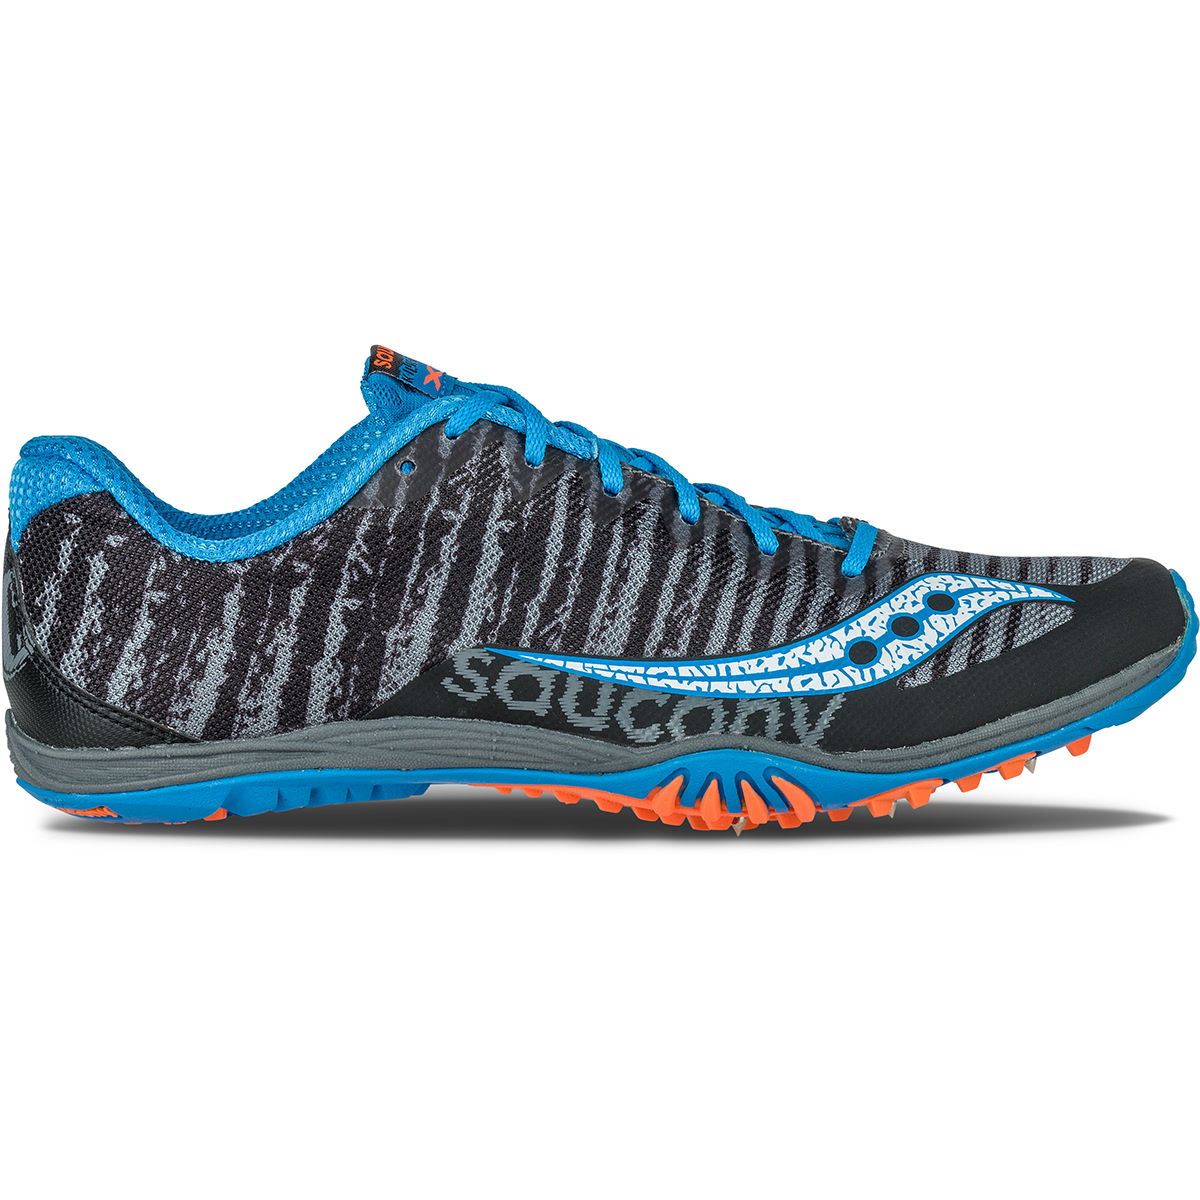 Chaussures de cross-country Saucony Kilkenny (AH16) - 5 UK Black/Carolina Chaussures de running à pointes